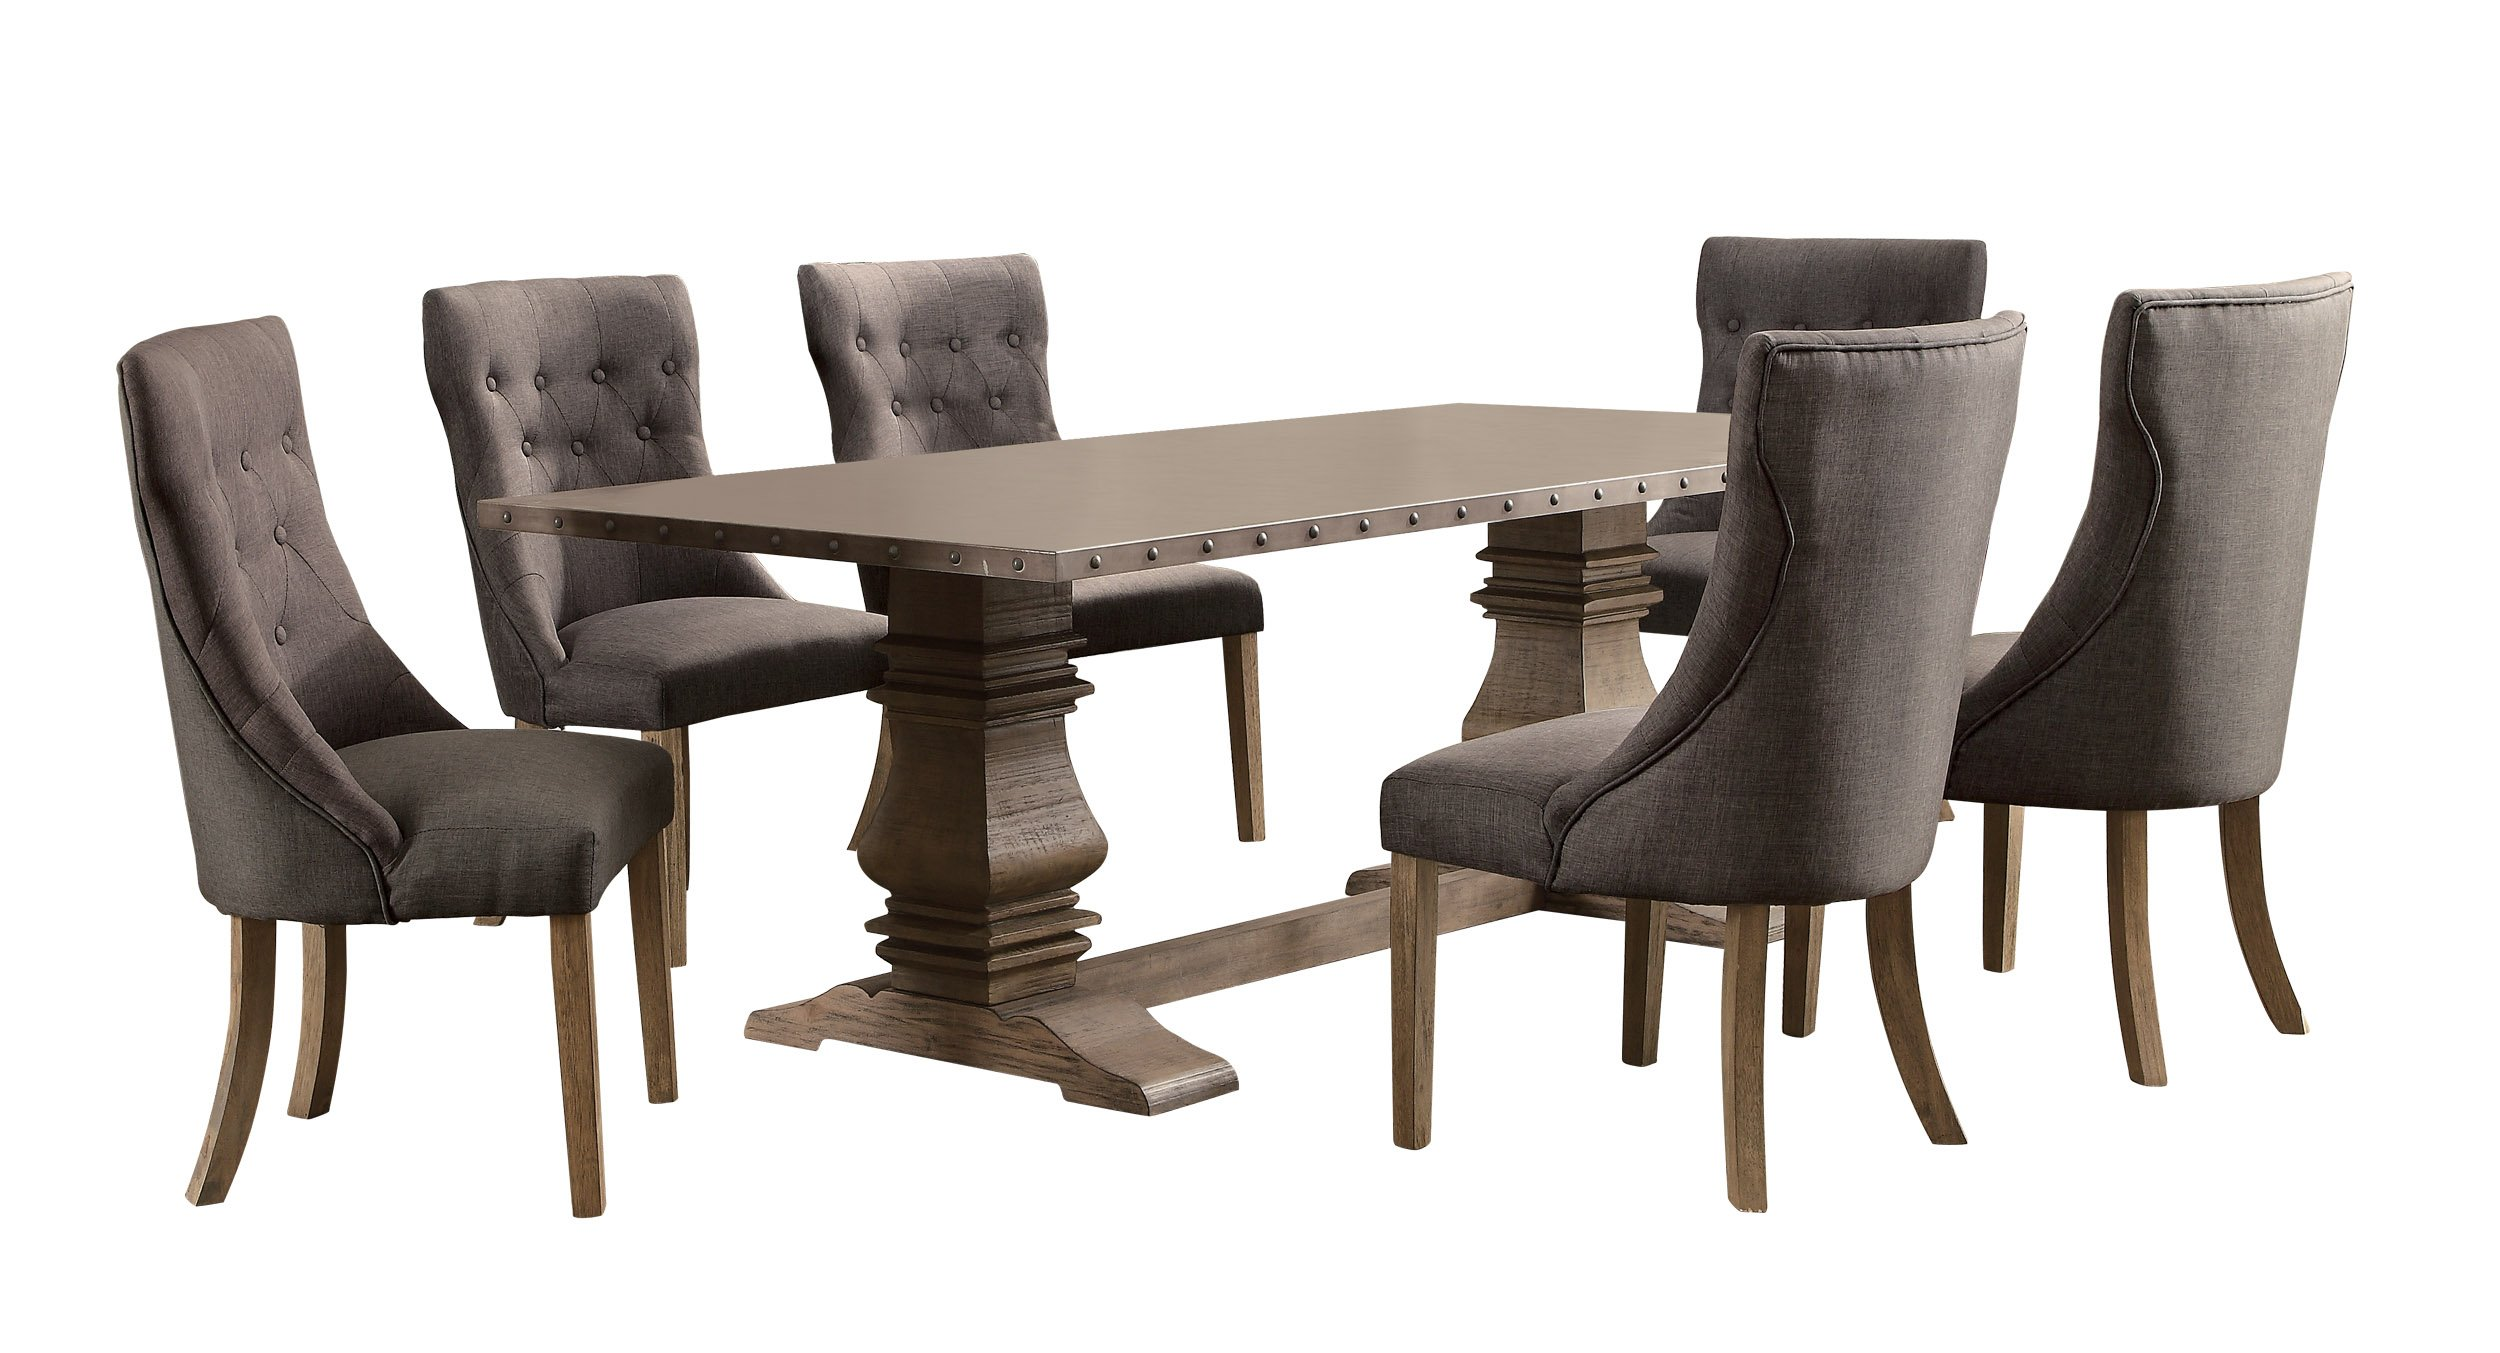 Homelegance Anna Claire 7-Piece Dining Set 84-inch Zinc Top Dining Table and 6 Button Tufted Wingback Chairs